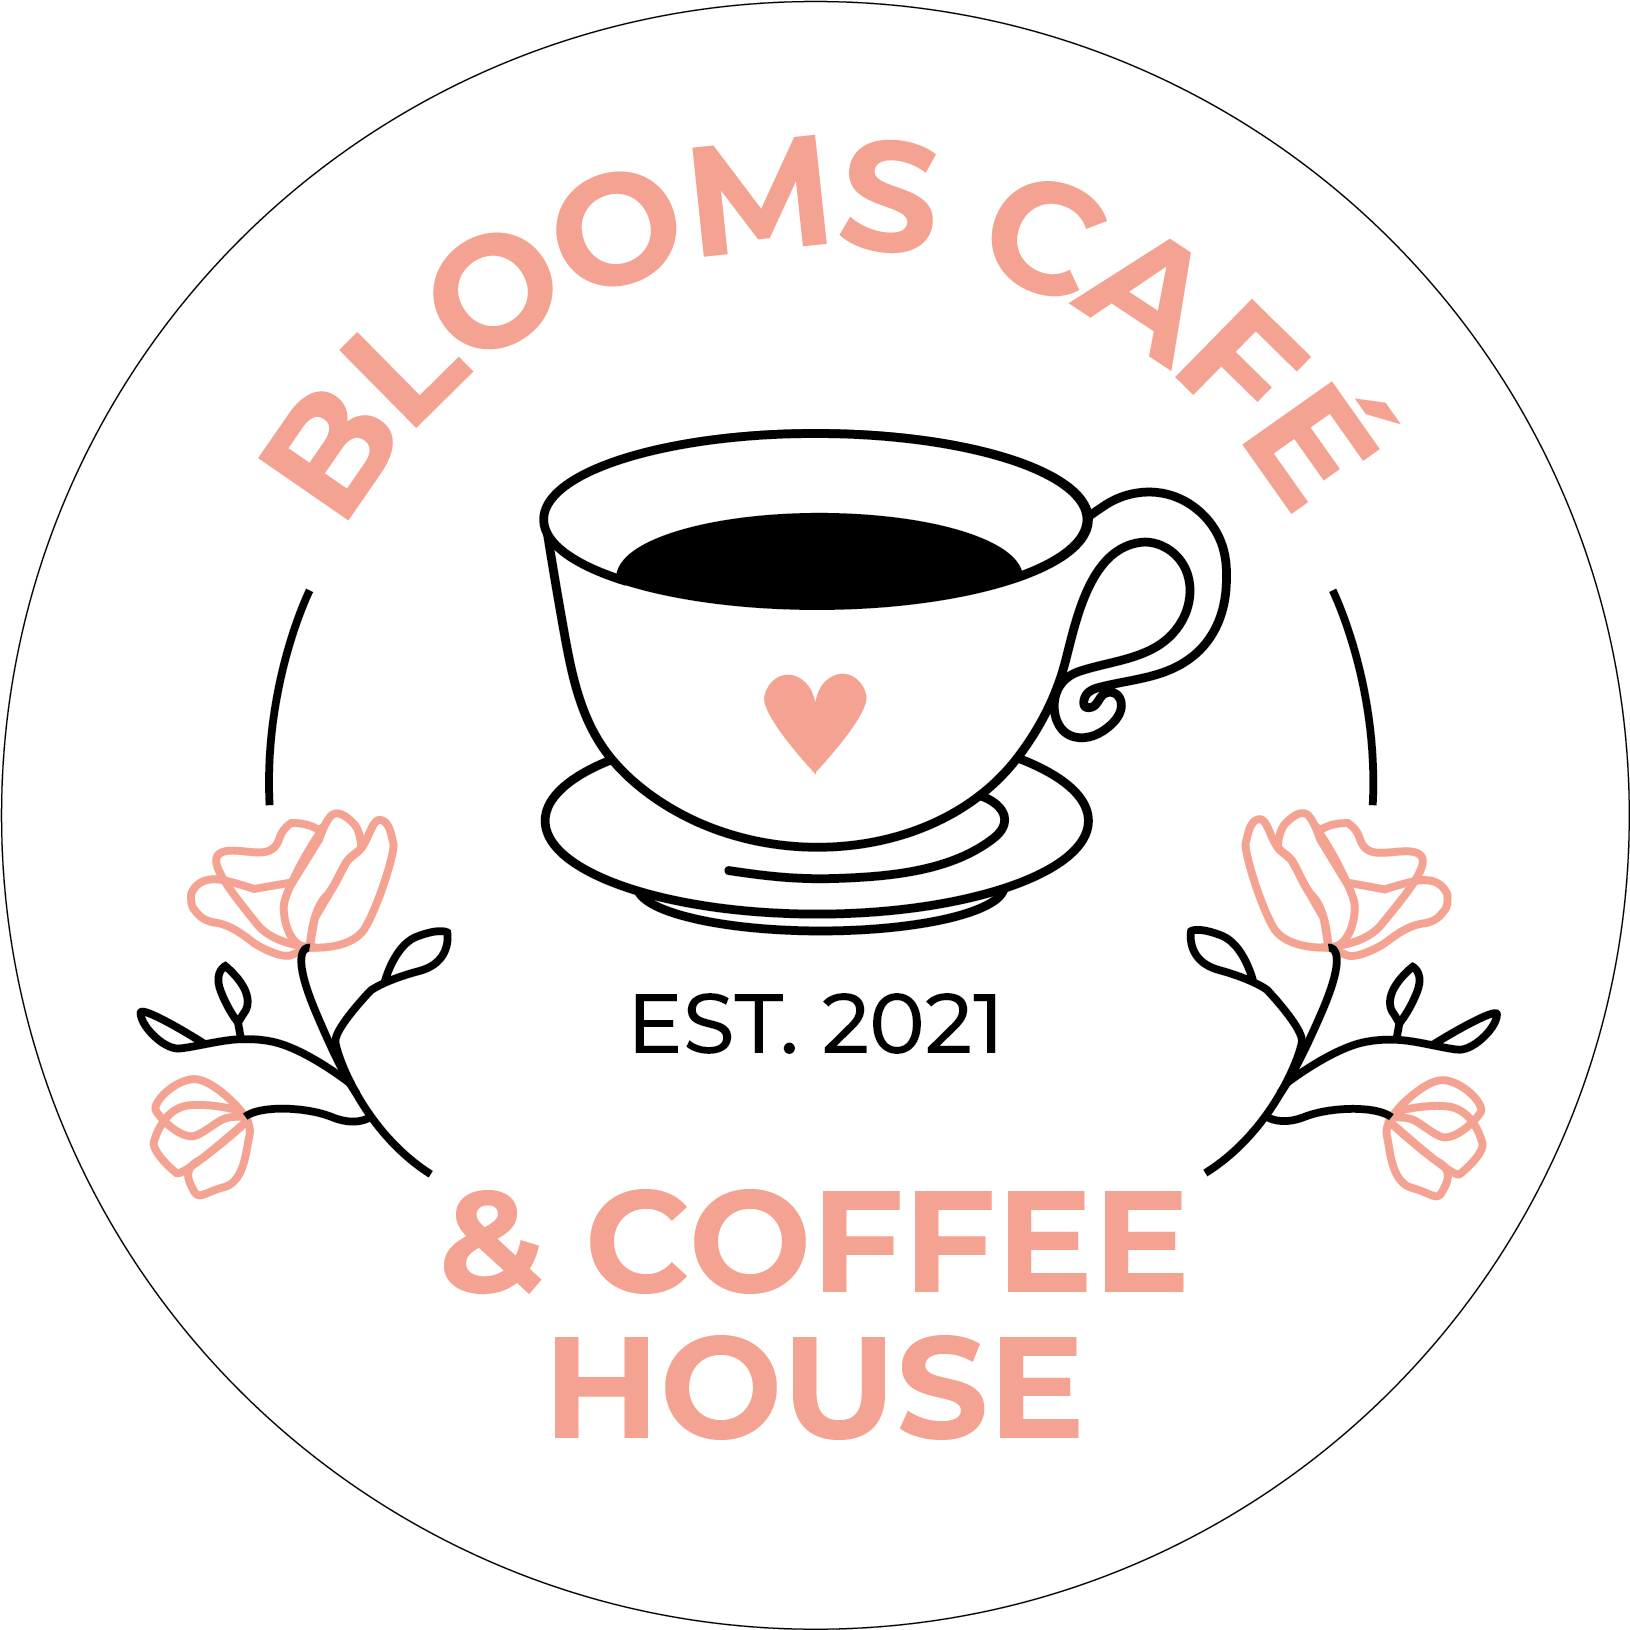 Blooms Café and Coffee House, Emsworth